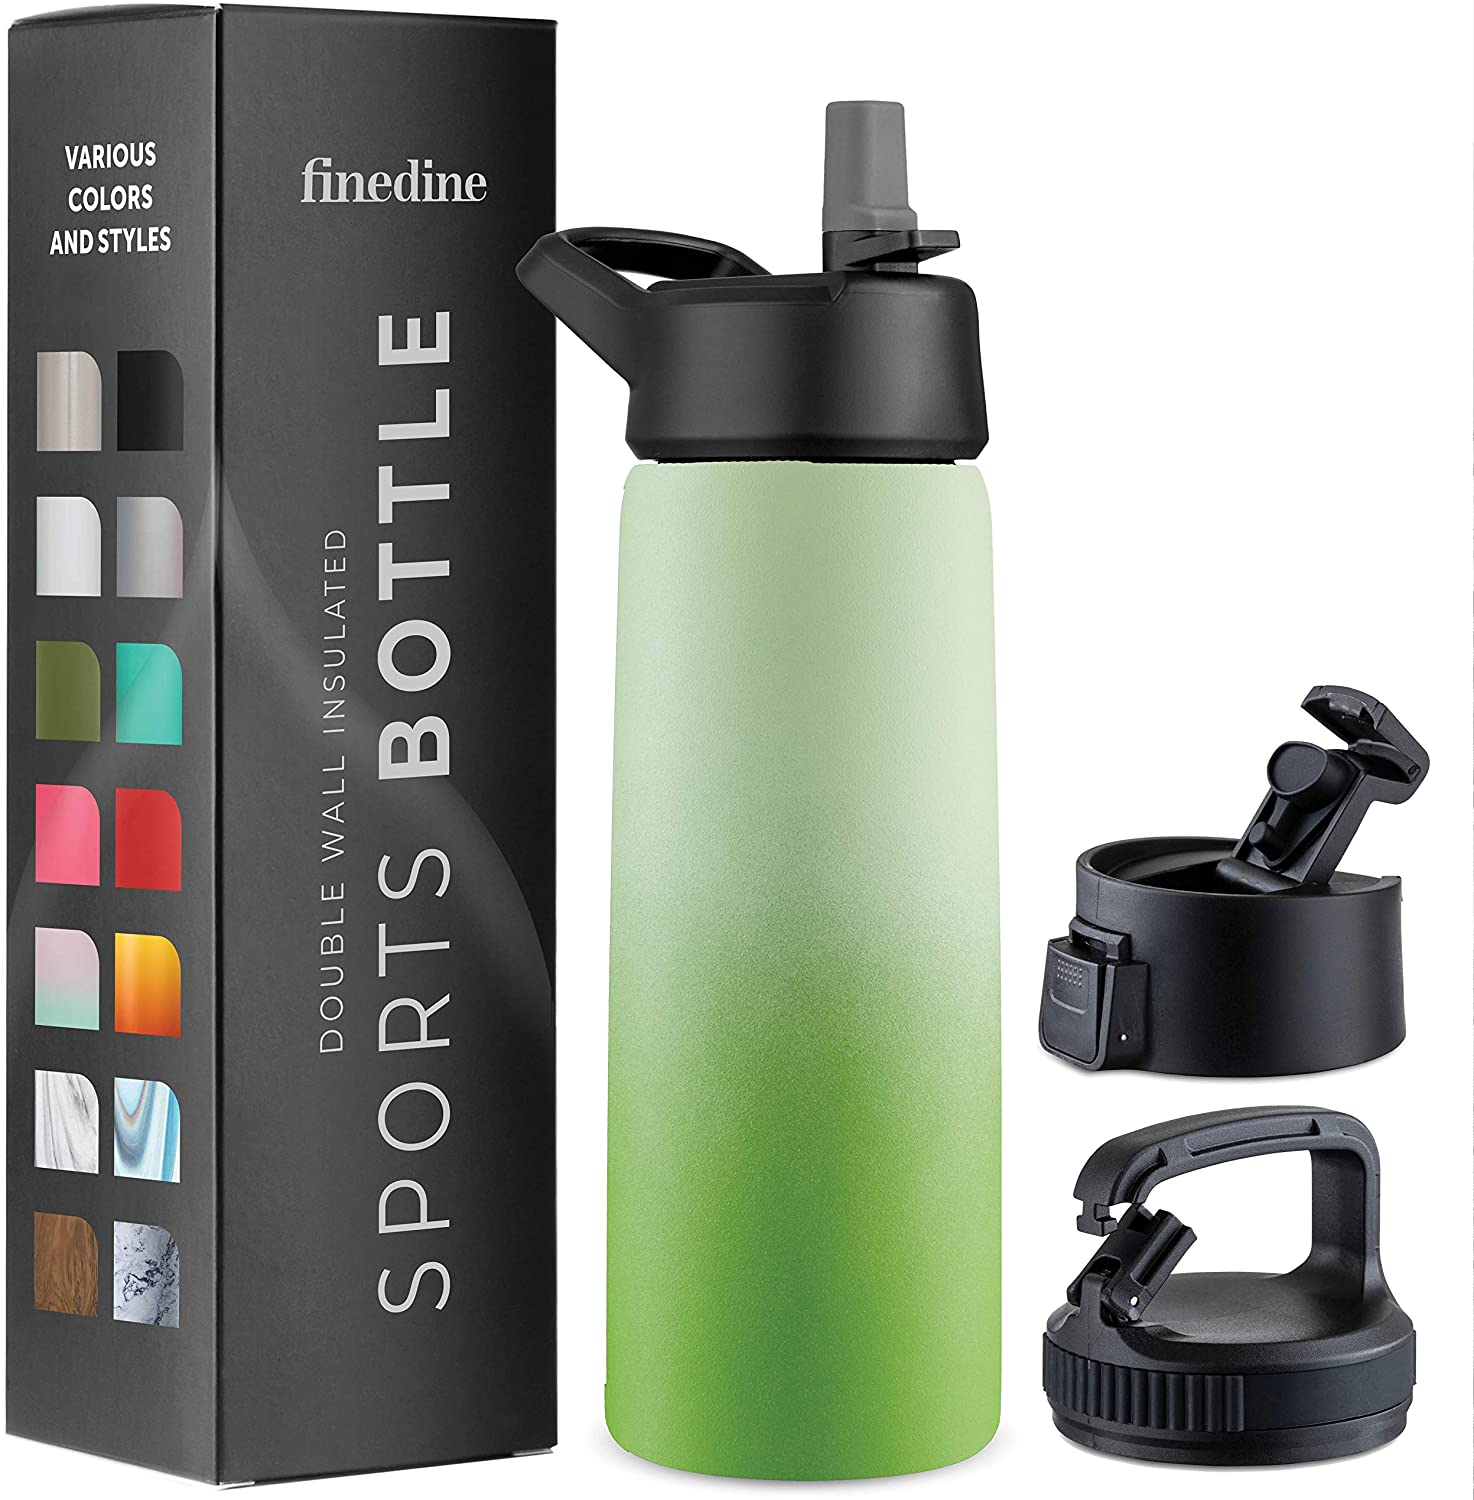 Triple Insulated Stainless Steel Water Bottle with Straw Lid - Flip Top Lid - Wide Mouth Cap (26 oz) Insulated Water Bottles, Keeps Hot and Cold - Great for Hiking & Biking.